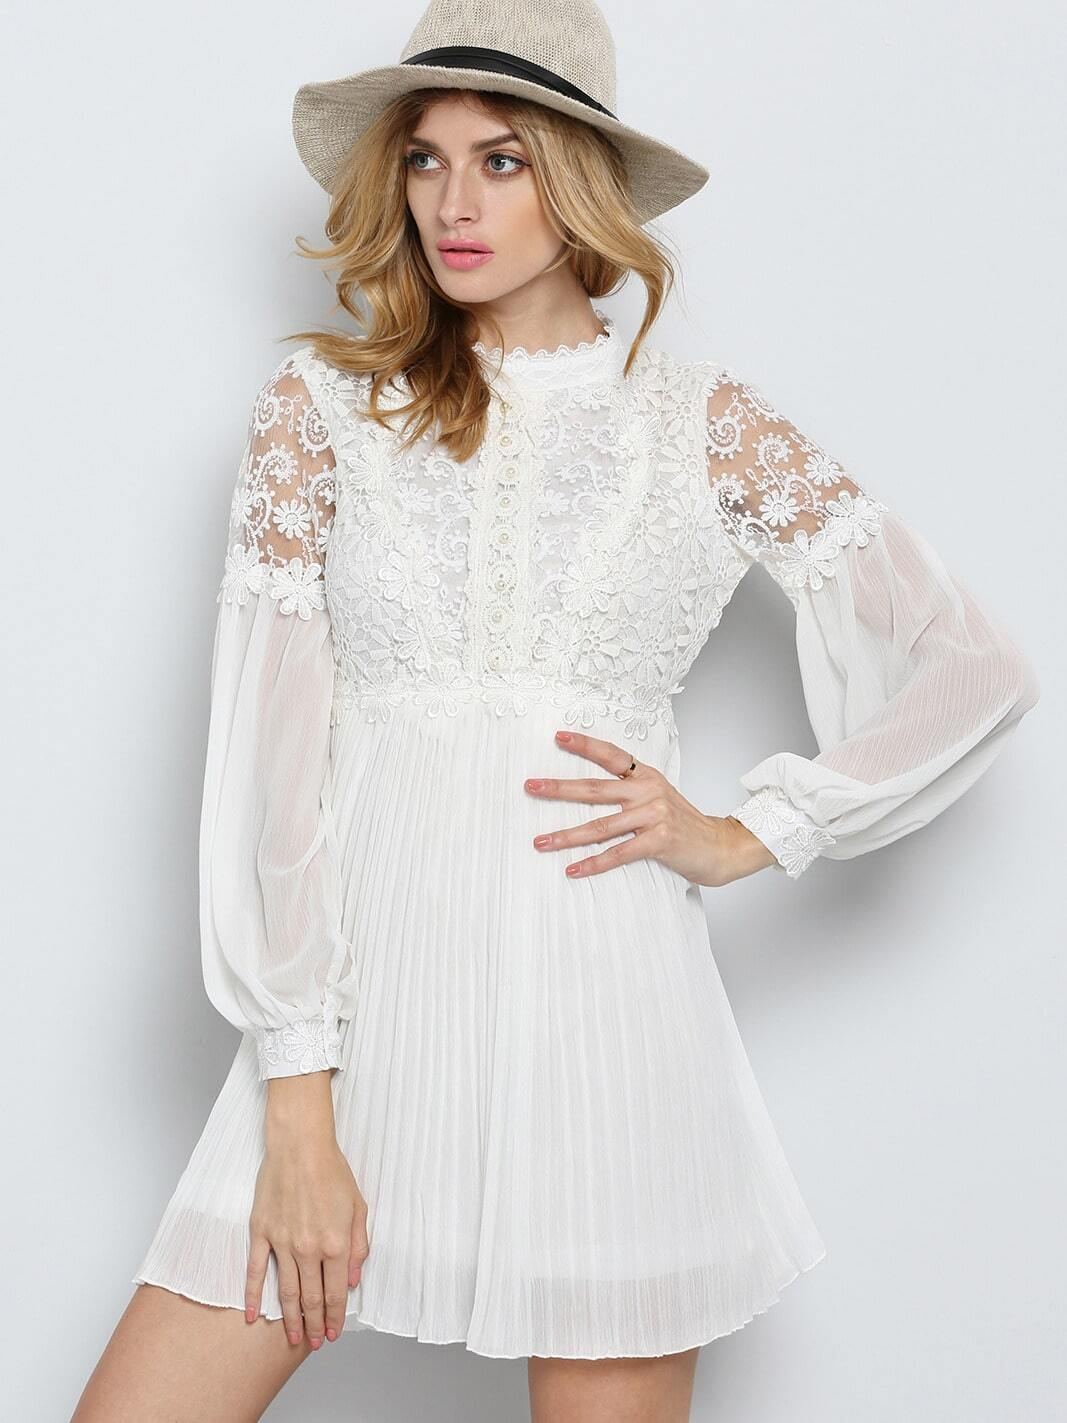 To acquire Lace white dress with sleeves picture trends